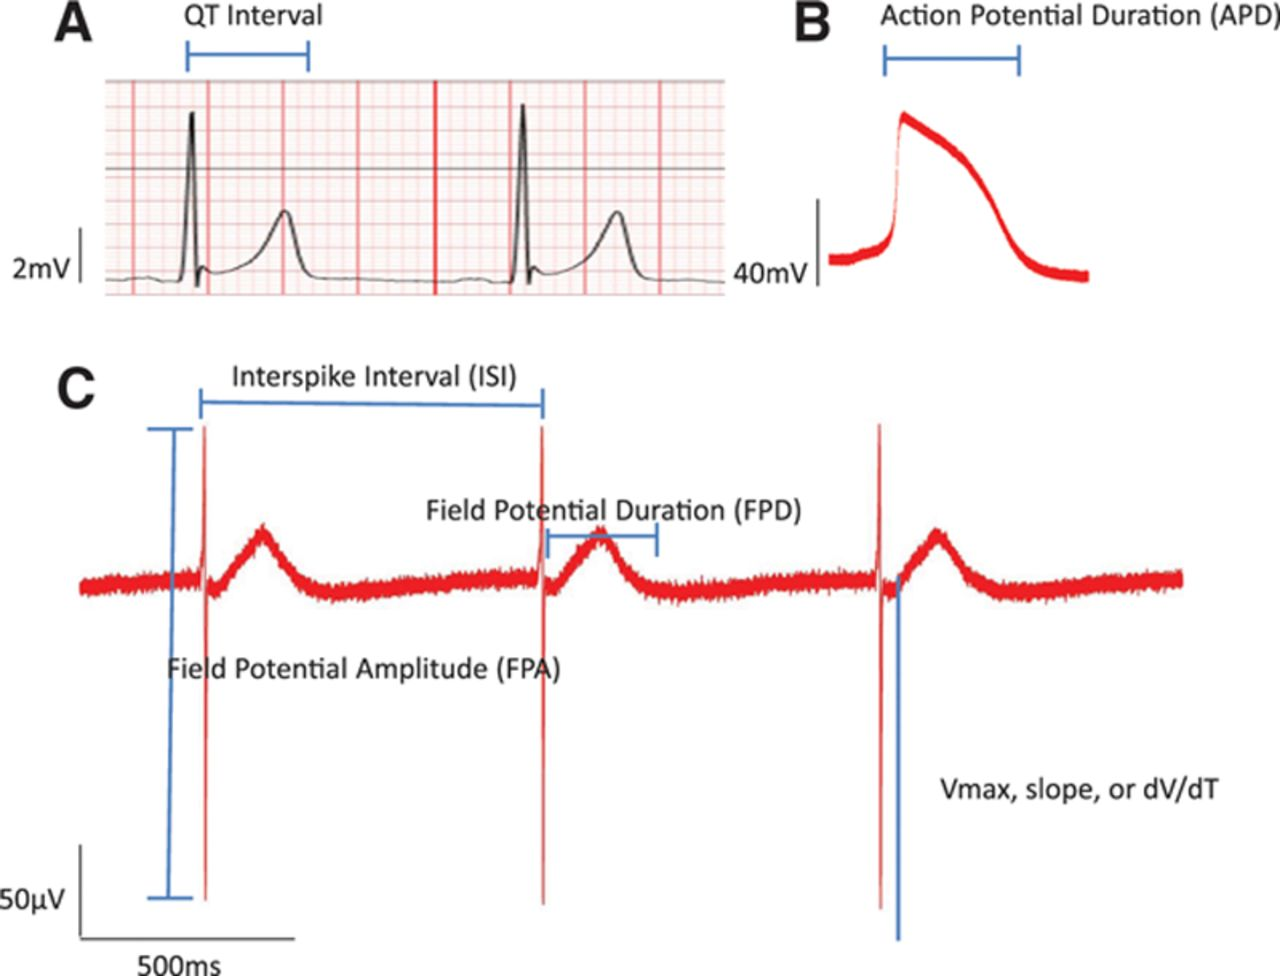 action potential duration in humans